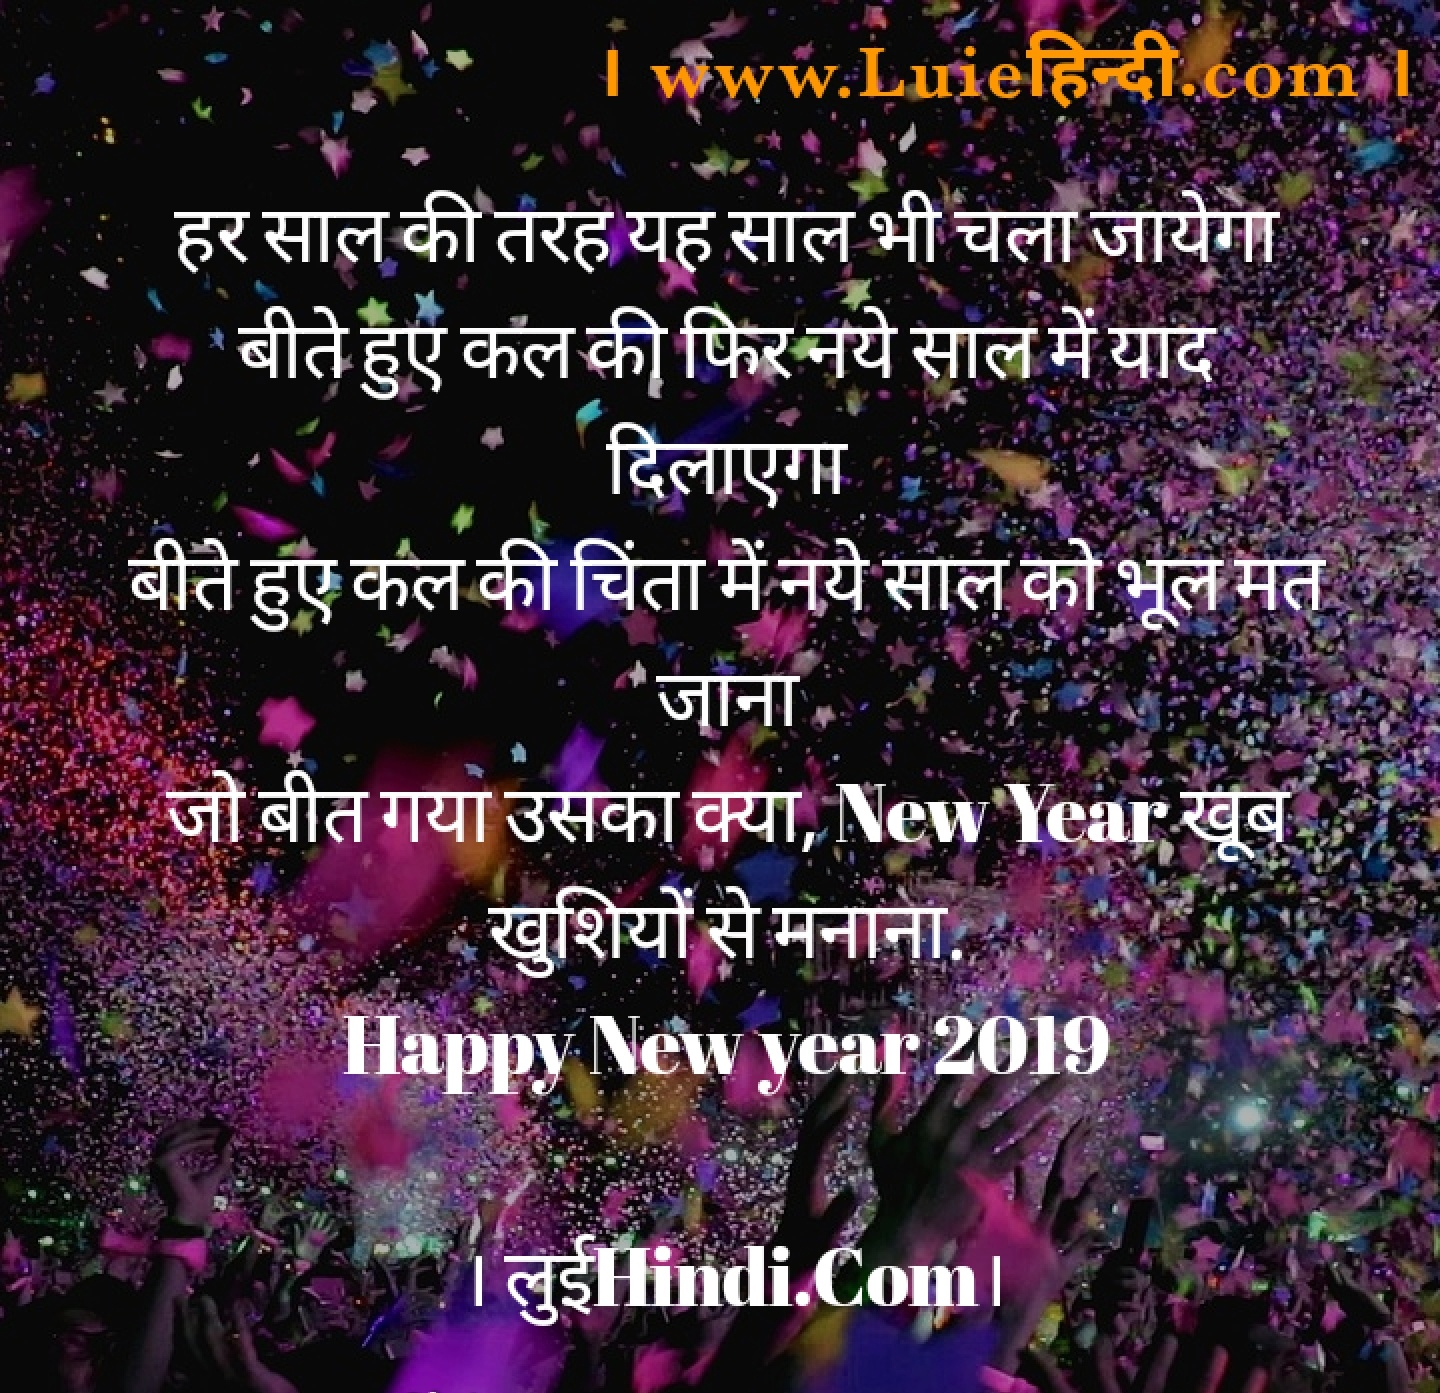 Happy New Year Photo 2019